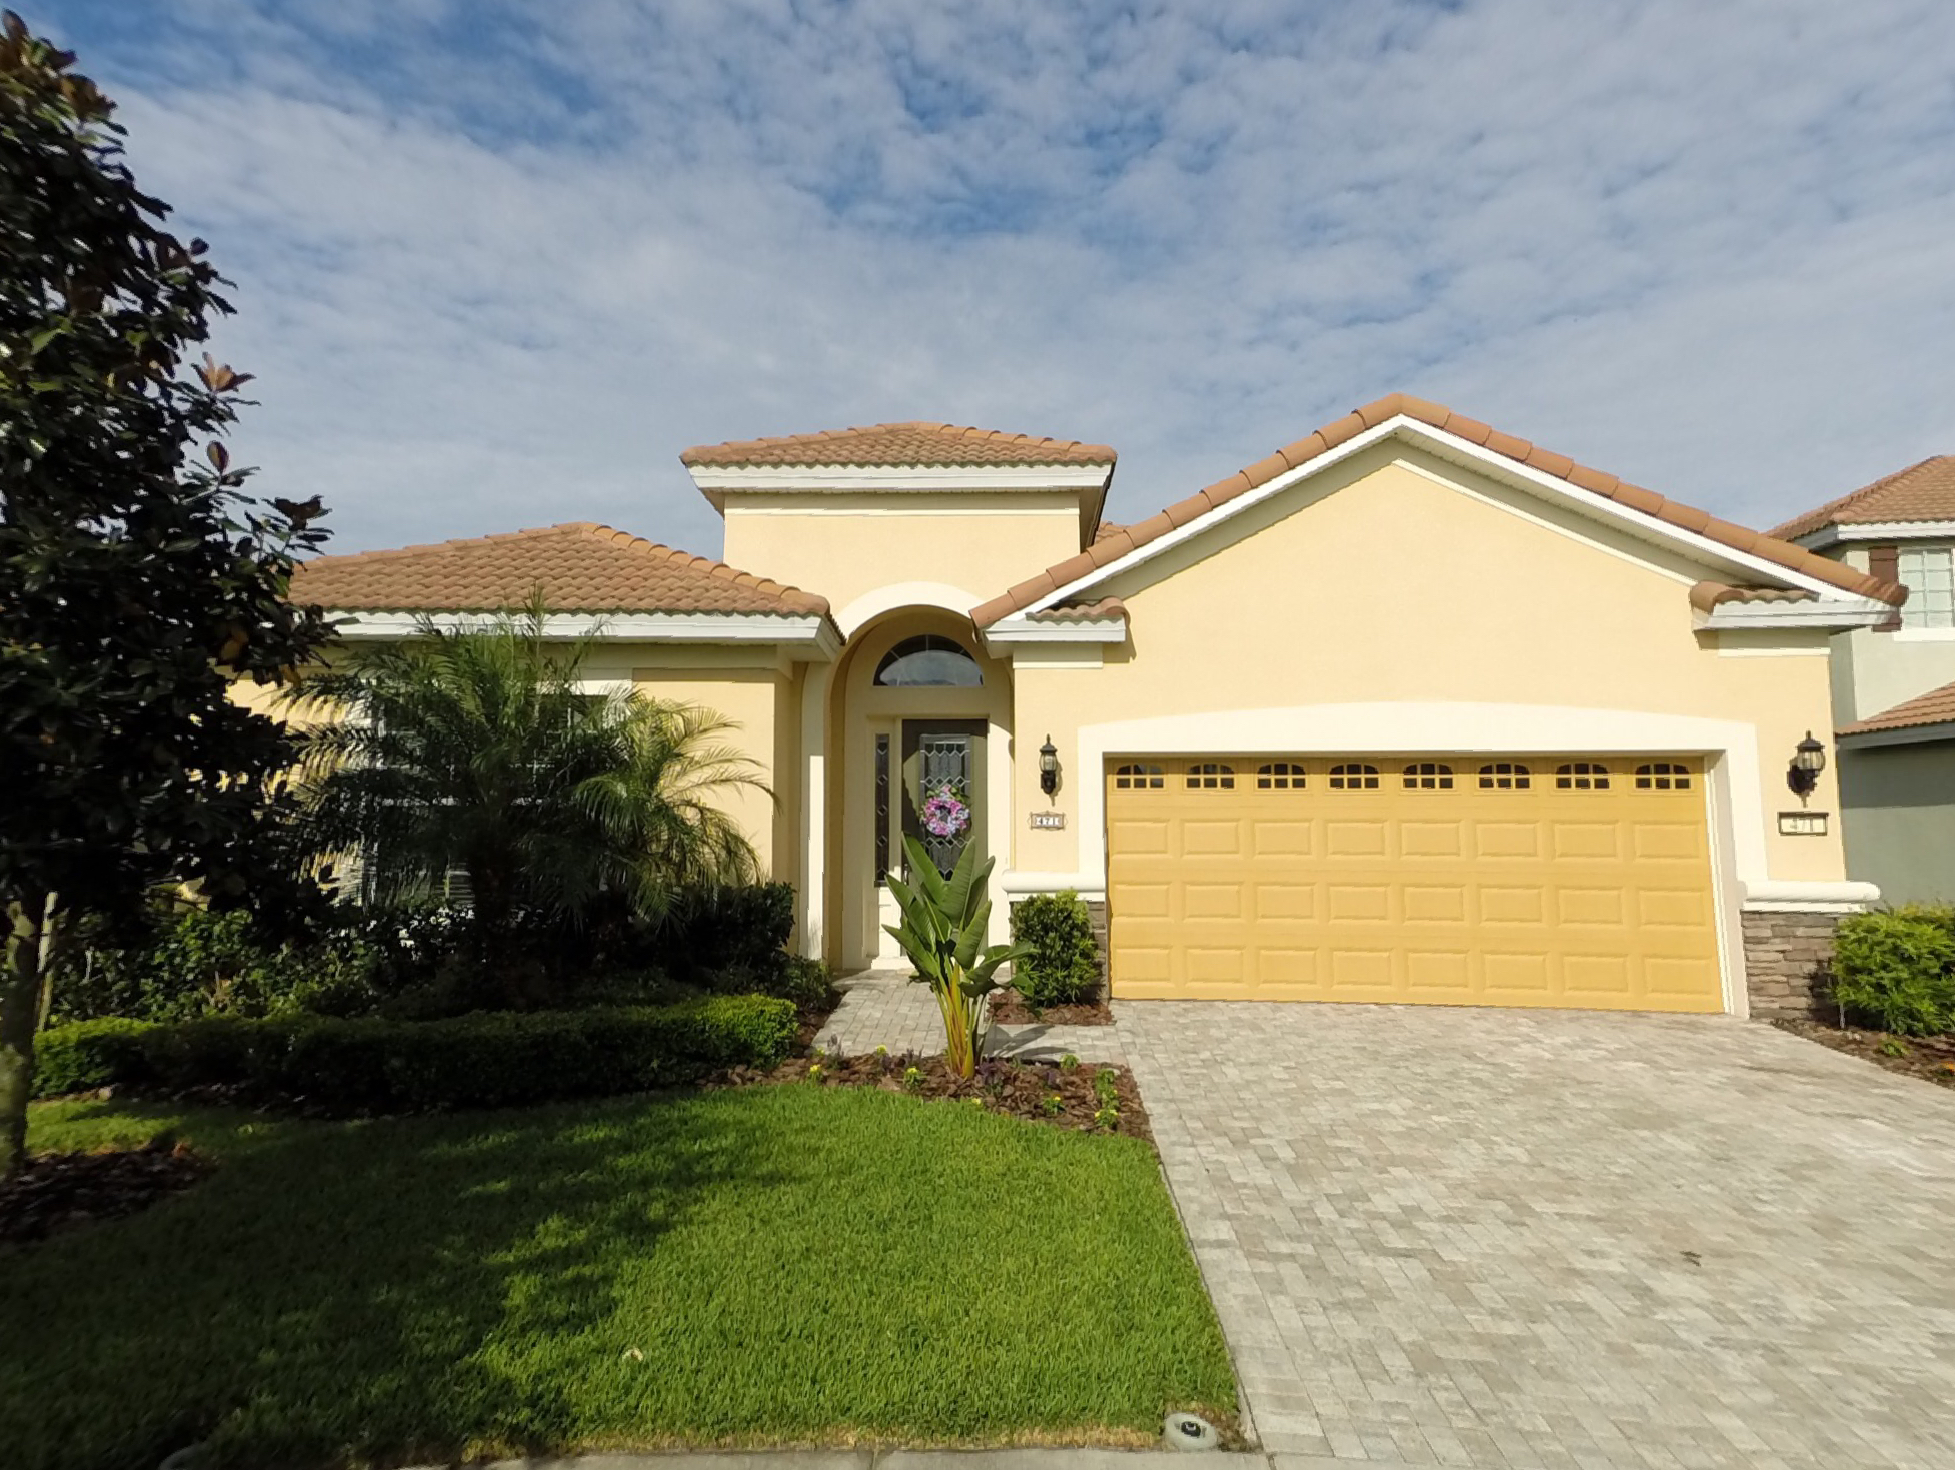 winter garden florida homes for sale search all winter garden florida homes for sale - Winter Garden Fl Homes